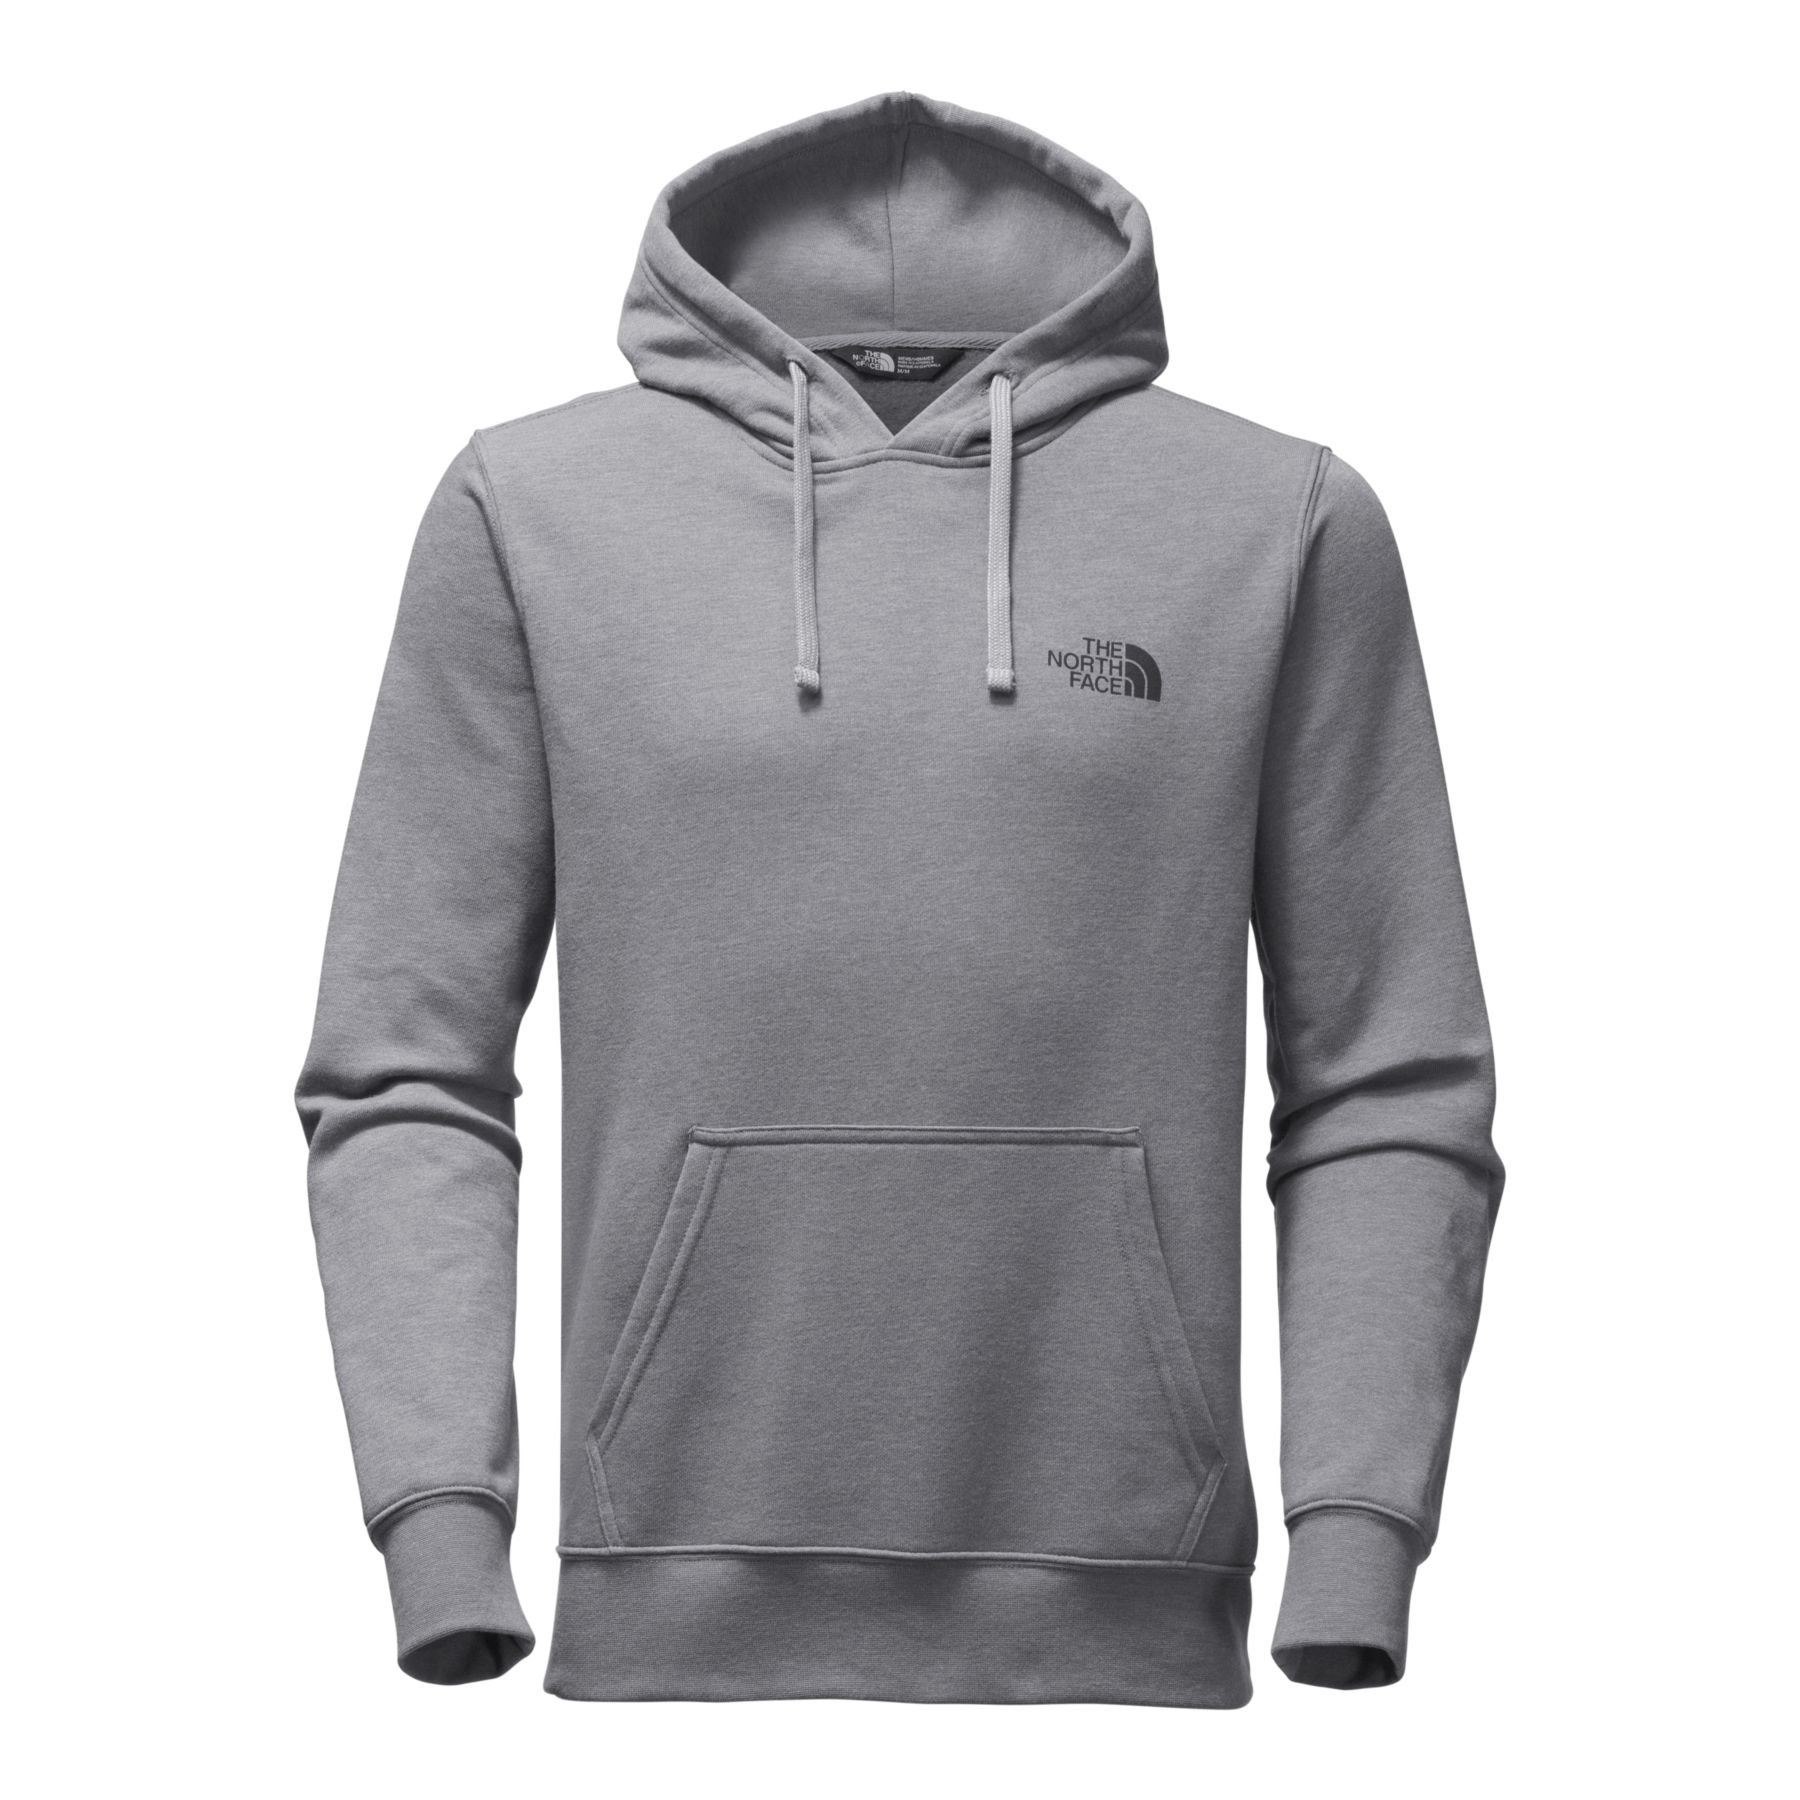 The North Face Men's Red Box Pullover Hoodie - TNF Medium Grey Heather & TNF Black - XXL by The North Face